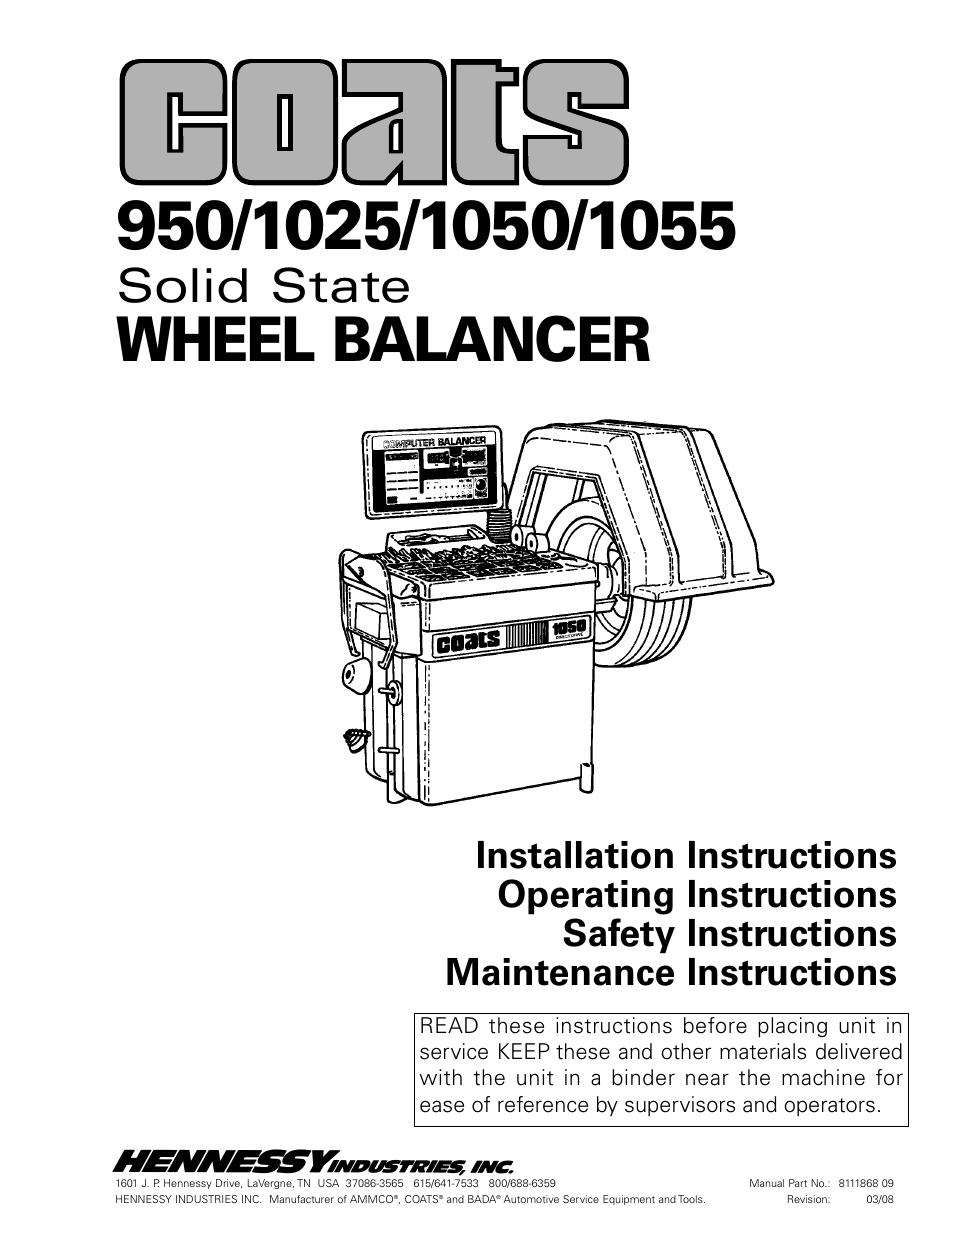 coats 1055 balancer user manual 24 pages also for 1050 balancer rh manualsdir com coats 950 tire balancer calibration Tire Balancer Coats 101